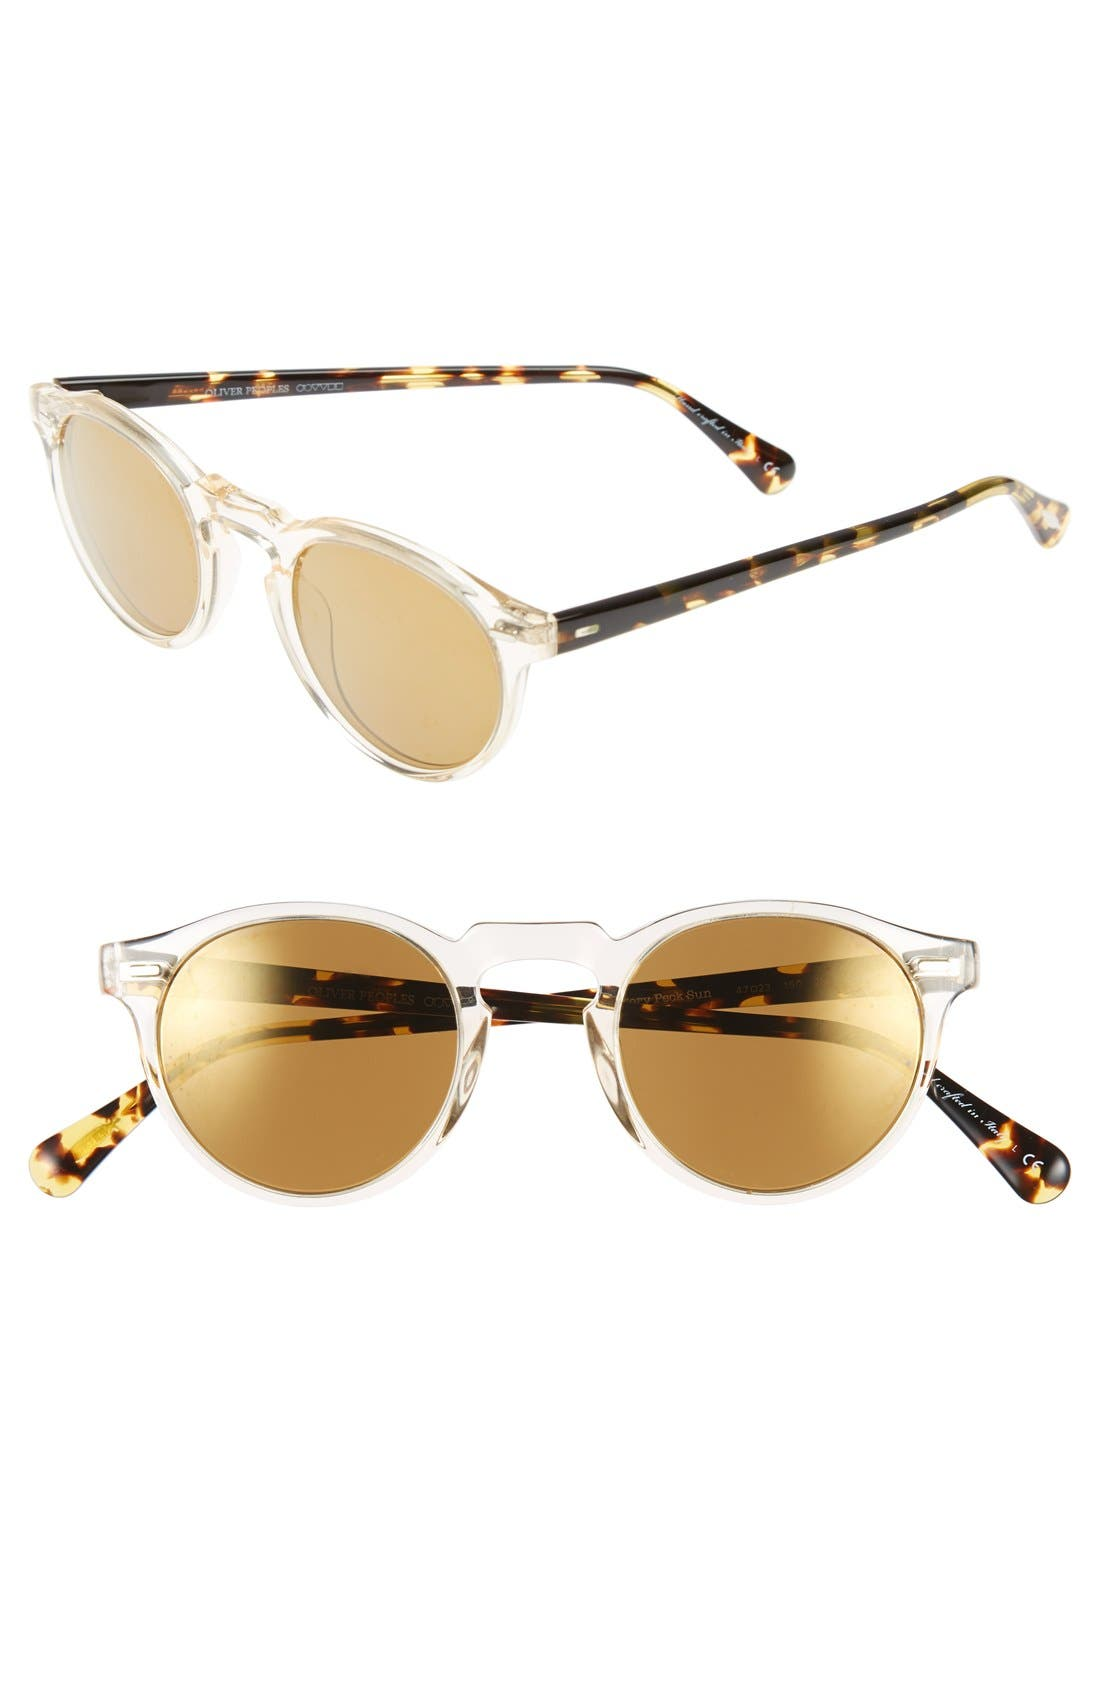 OLIVER PEOPLES,                             'Gregory Peck' 47mm Retro Sunglasses,                             Main thumbnail 1, color,                             YELLOW/ GOLD MIRROR